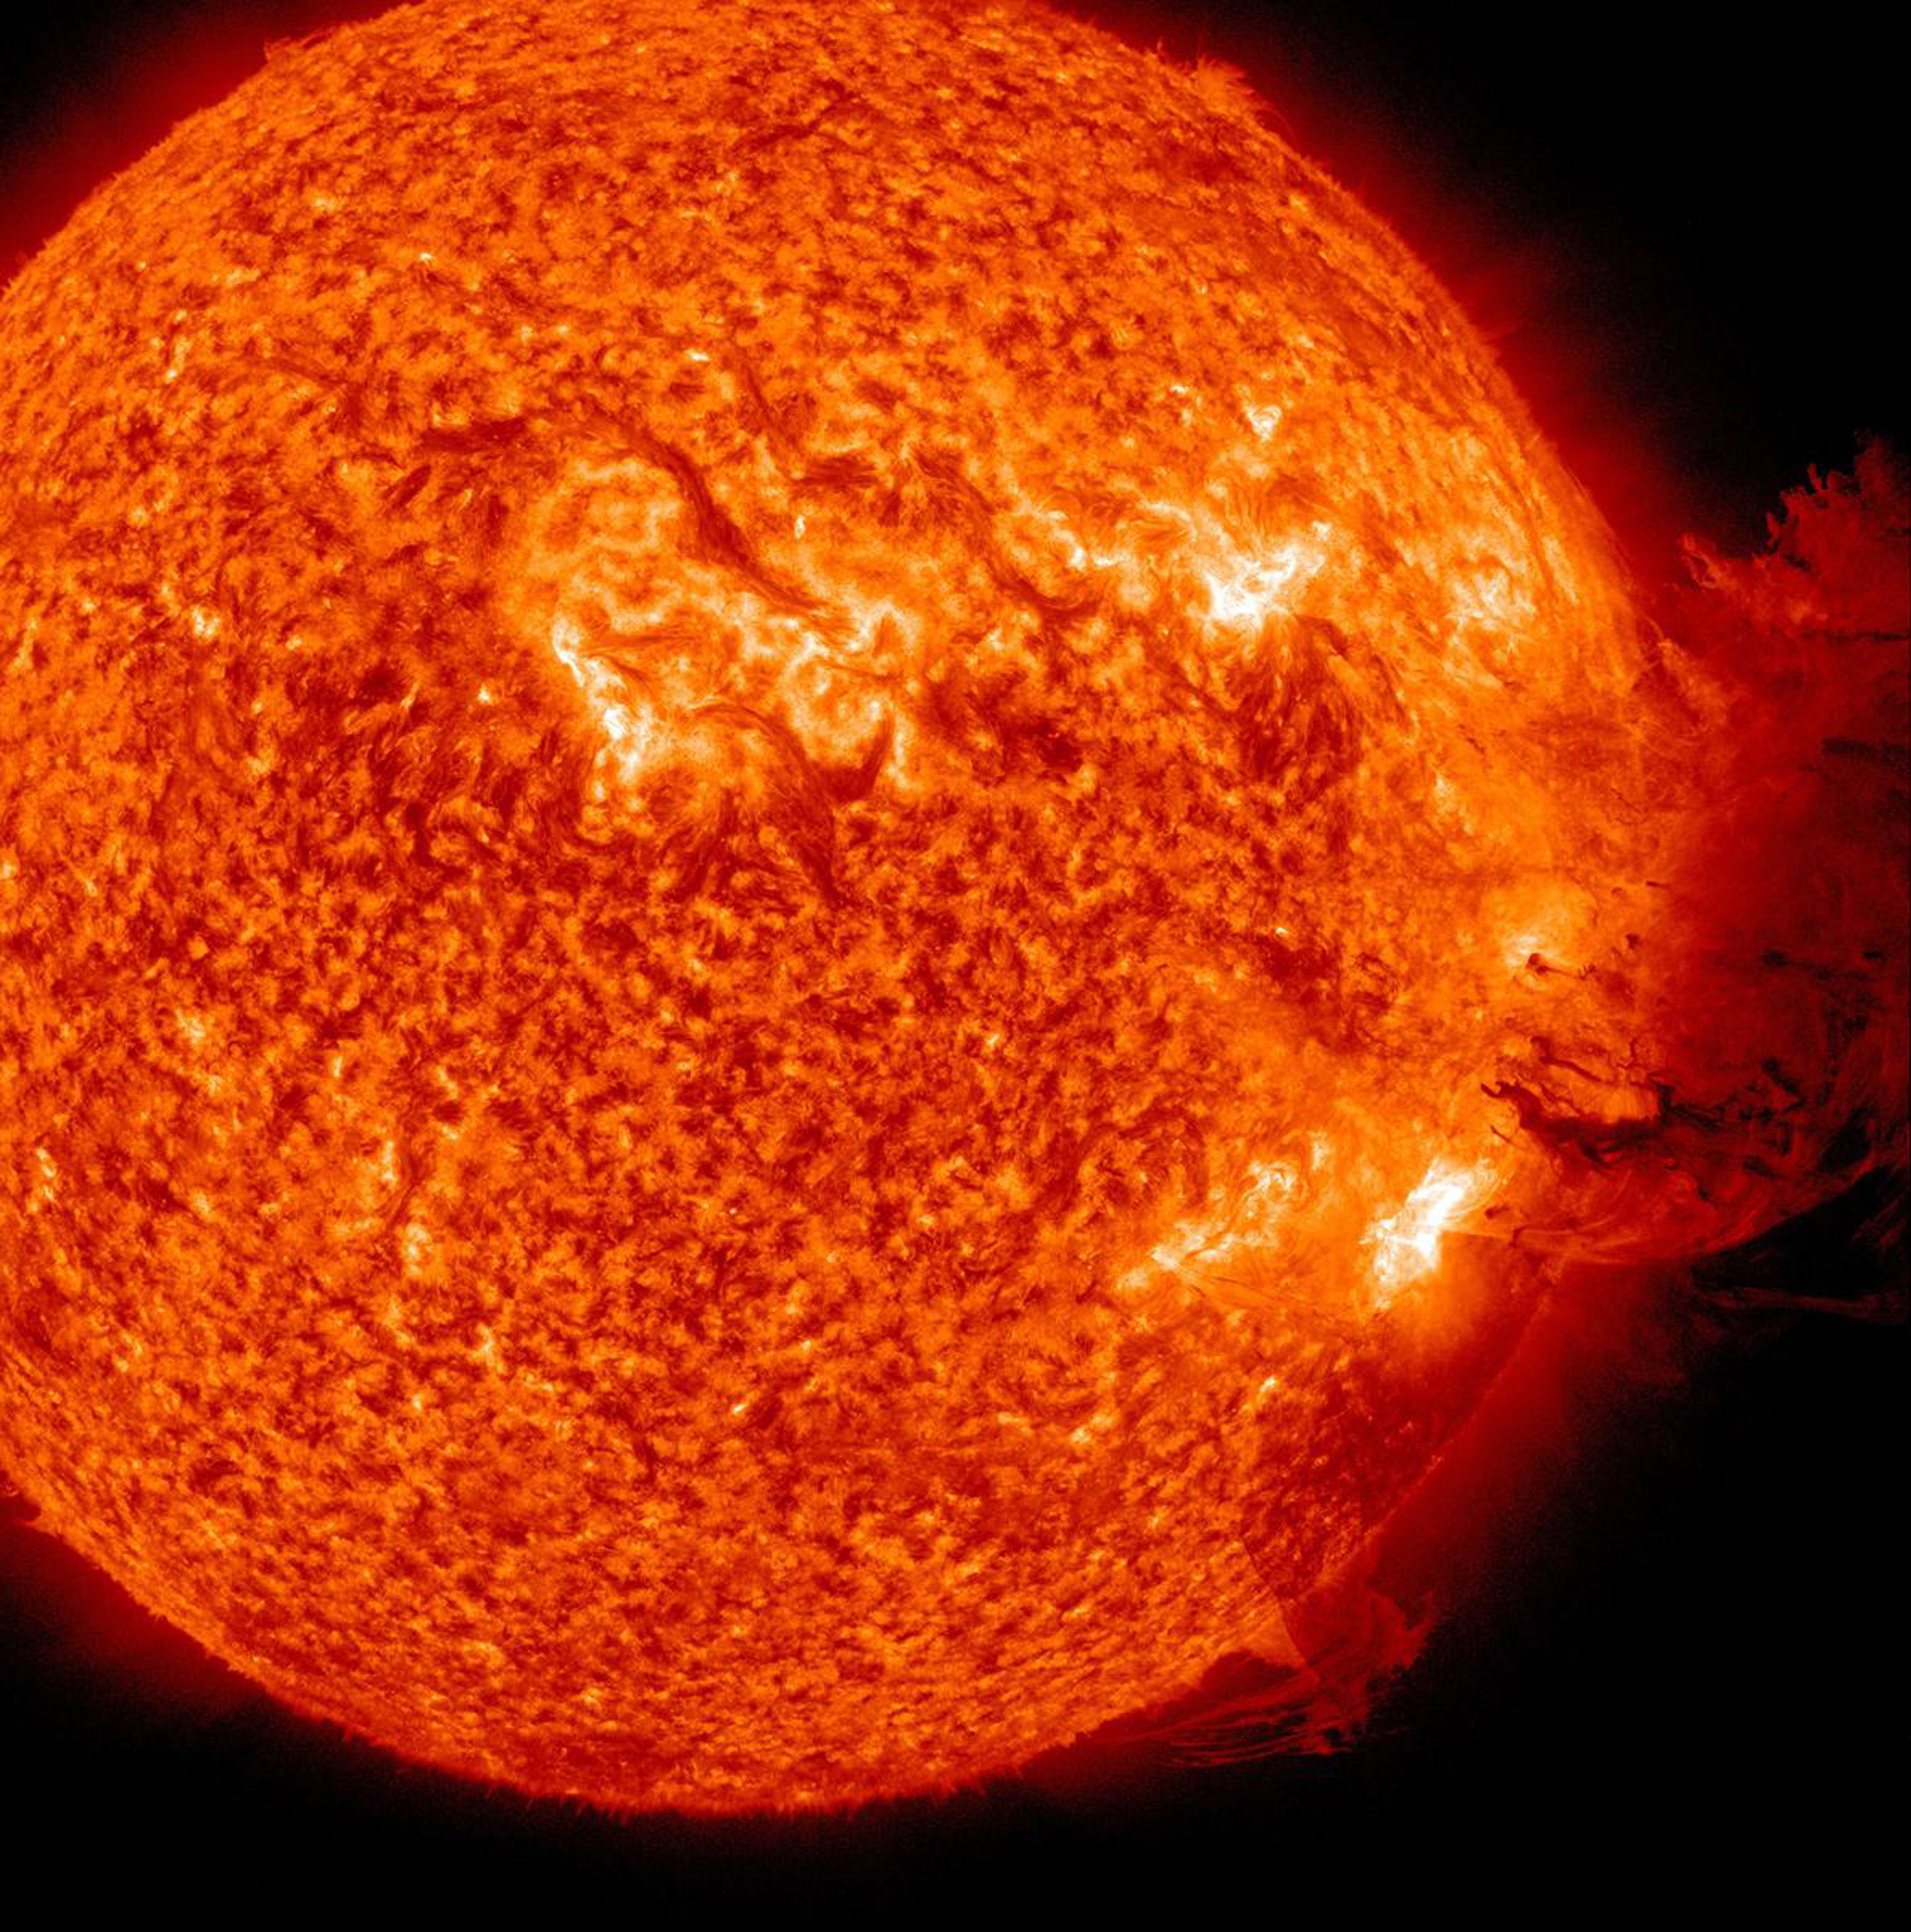 NASA Solar Flare Photos 2010-2012 | Public Intelligence